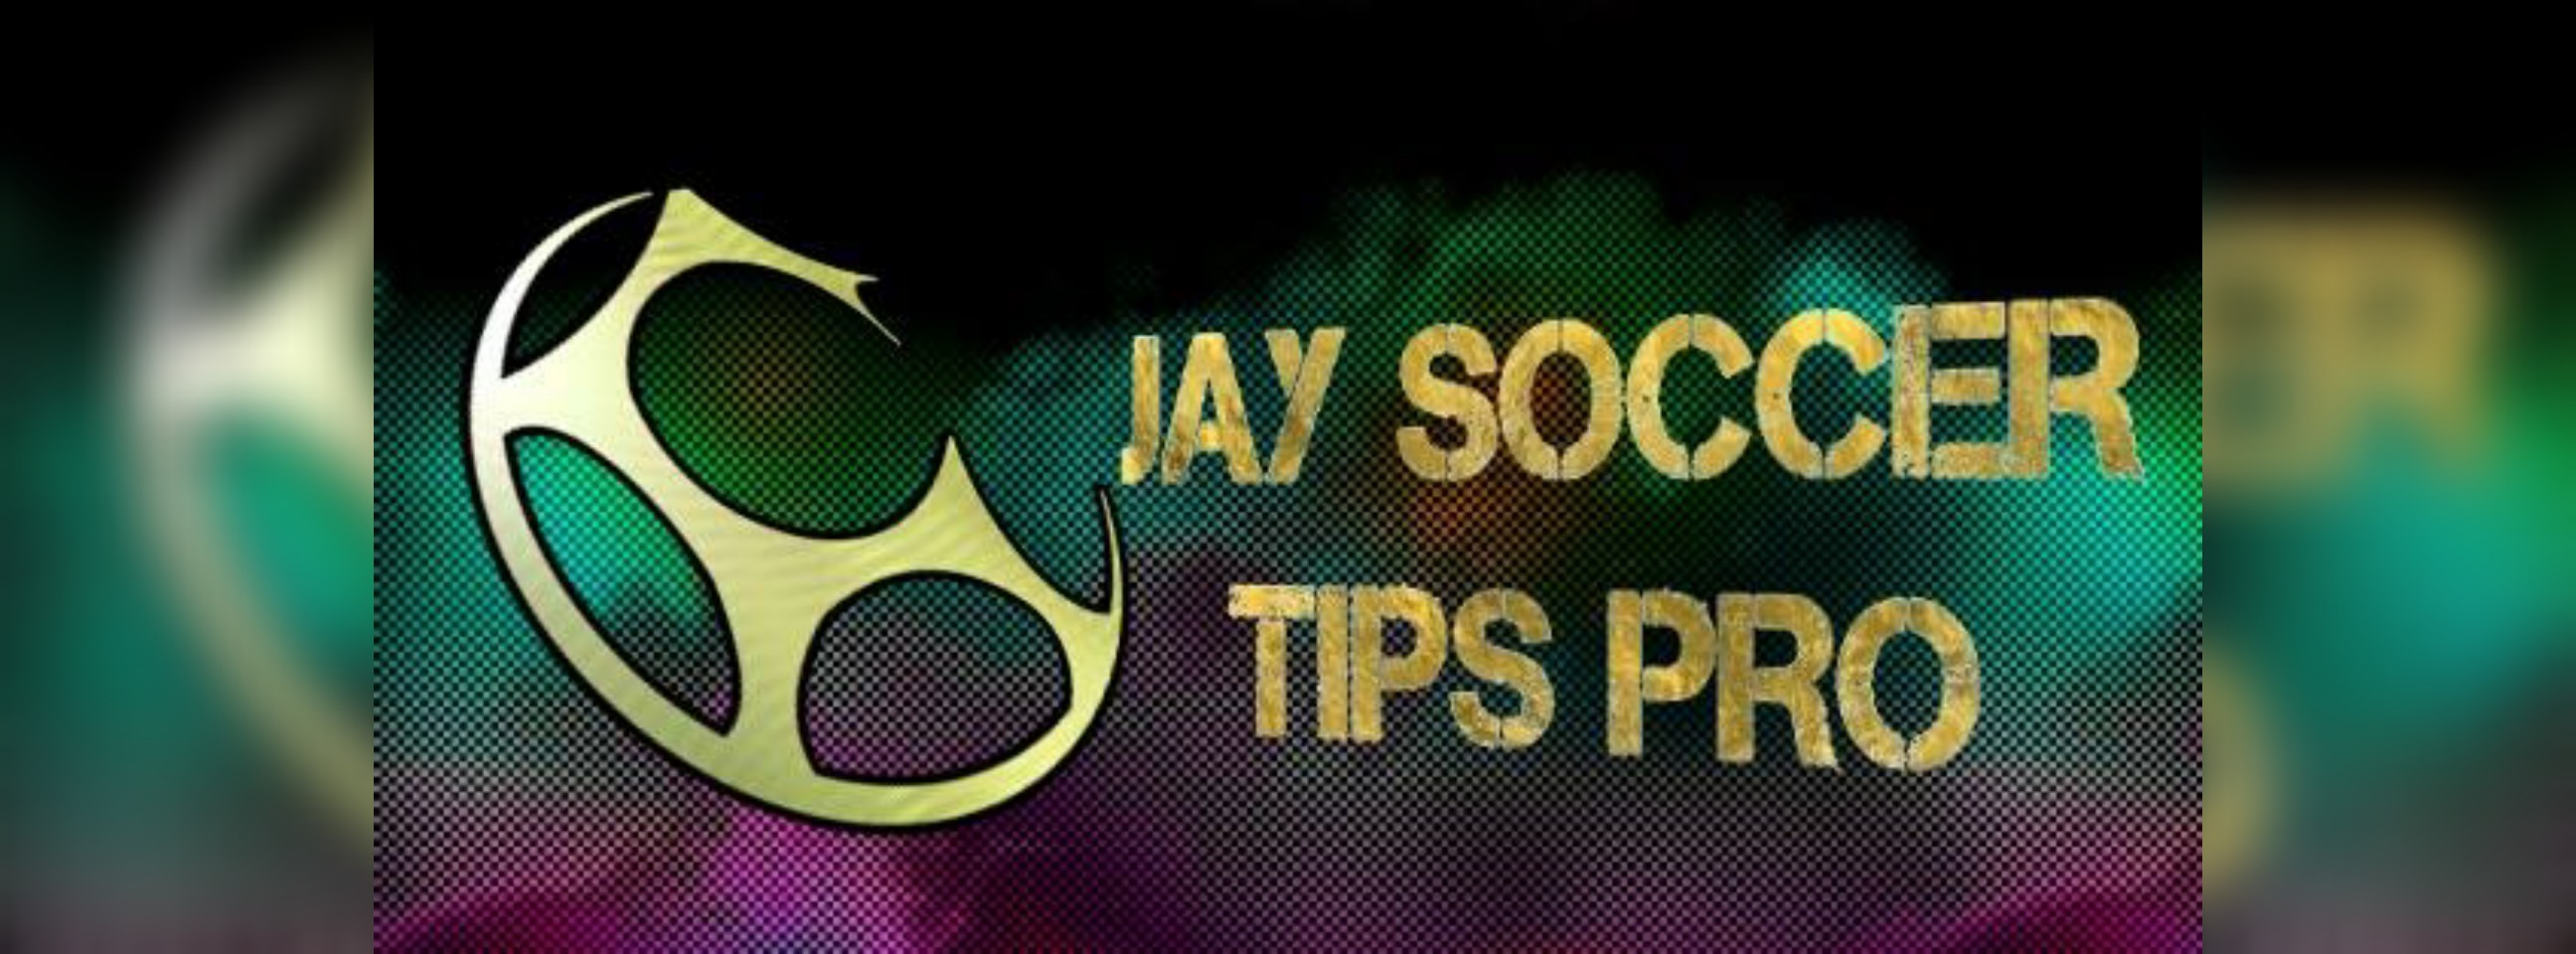 Football Prediction & Tips EPL, UEFA, EL | Jaysoccertips